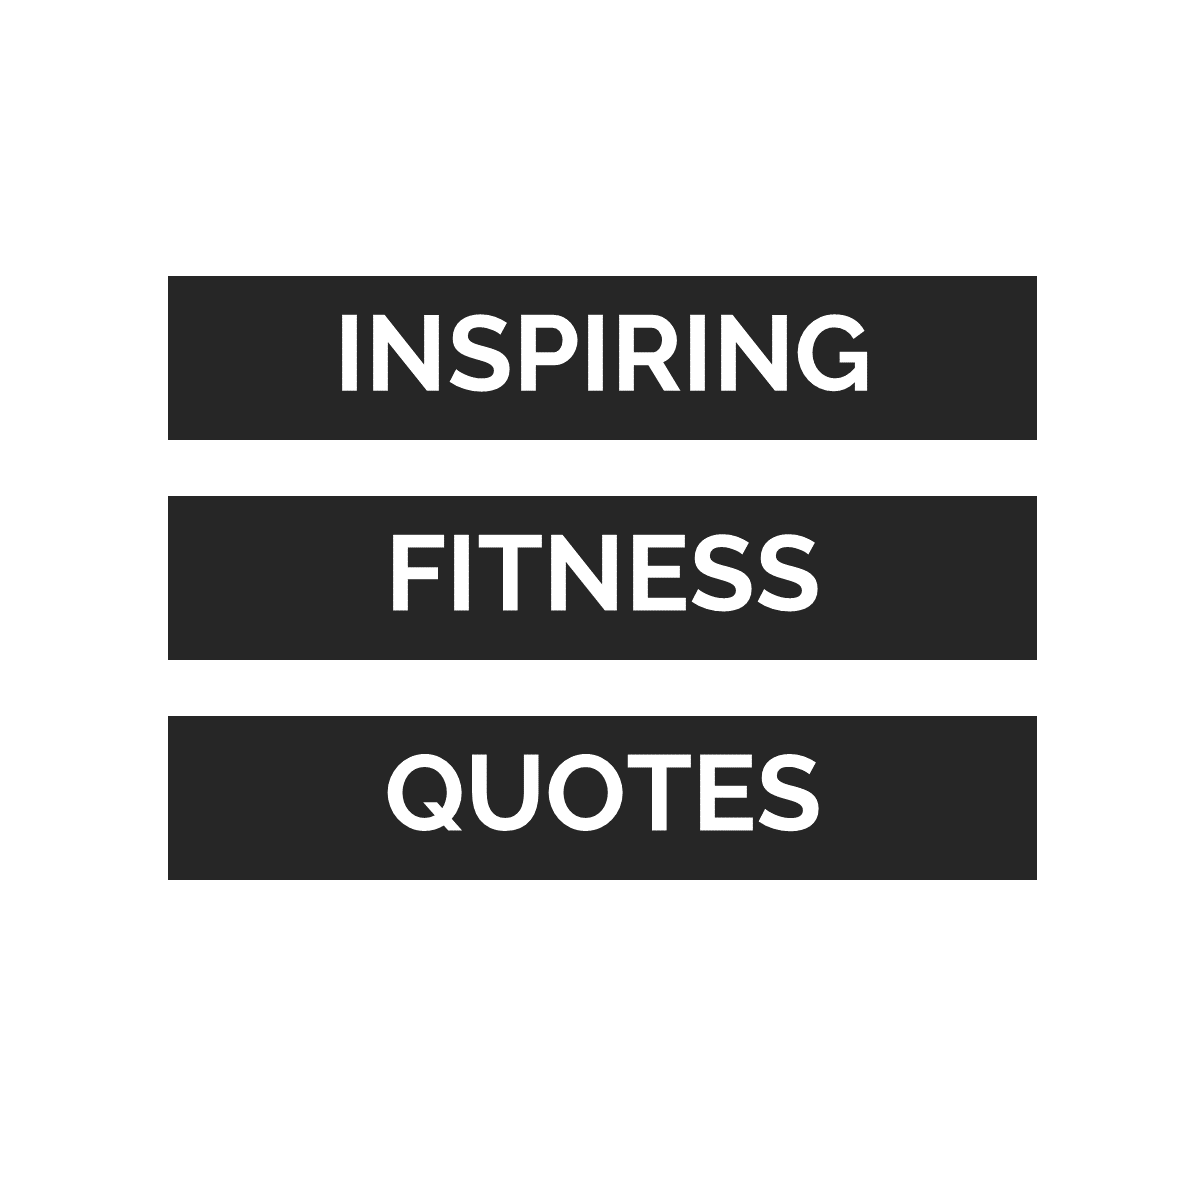 30 Inspirational Fitness Quotes - Social Media Bundle